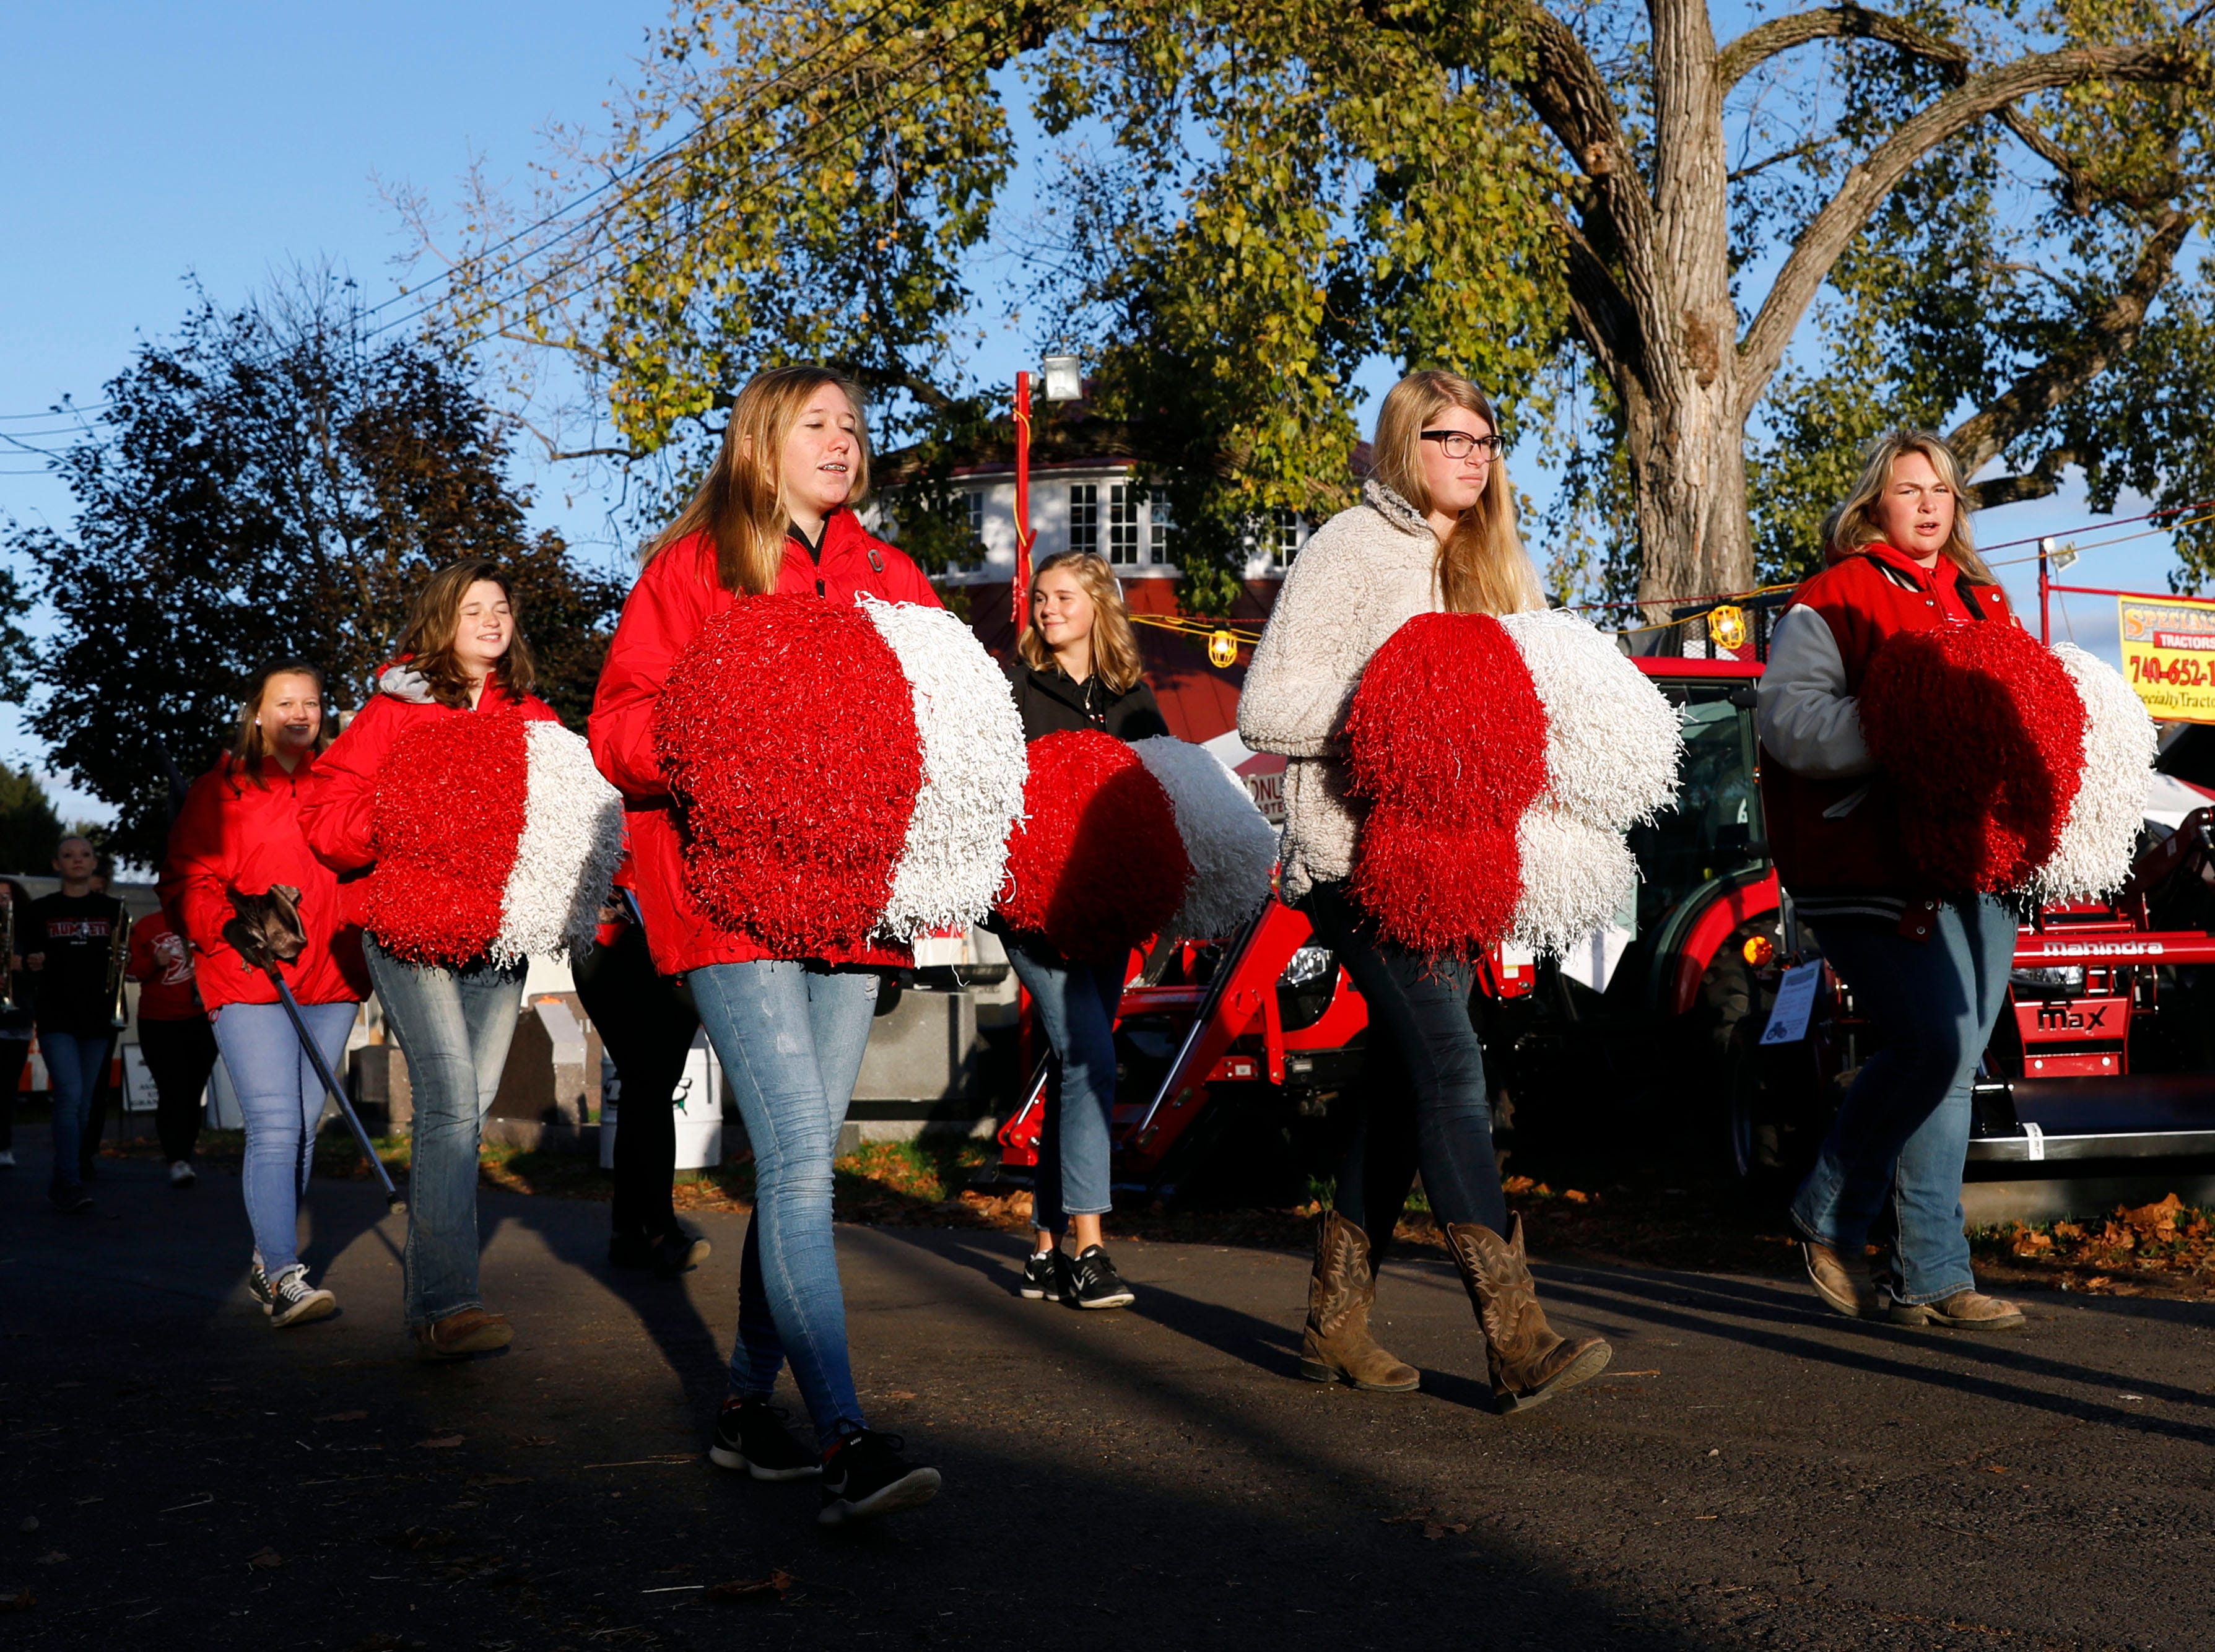 The Fairfield Union High School marching band parade around the Fairfield County Fairgrounds before performing the national anthem prior to the livestock auction Friday morning, Oct. 12, 2018, at the Fairfield County Fair in Lancaster.